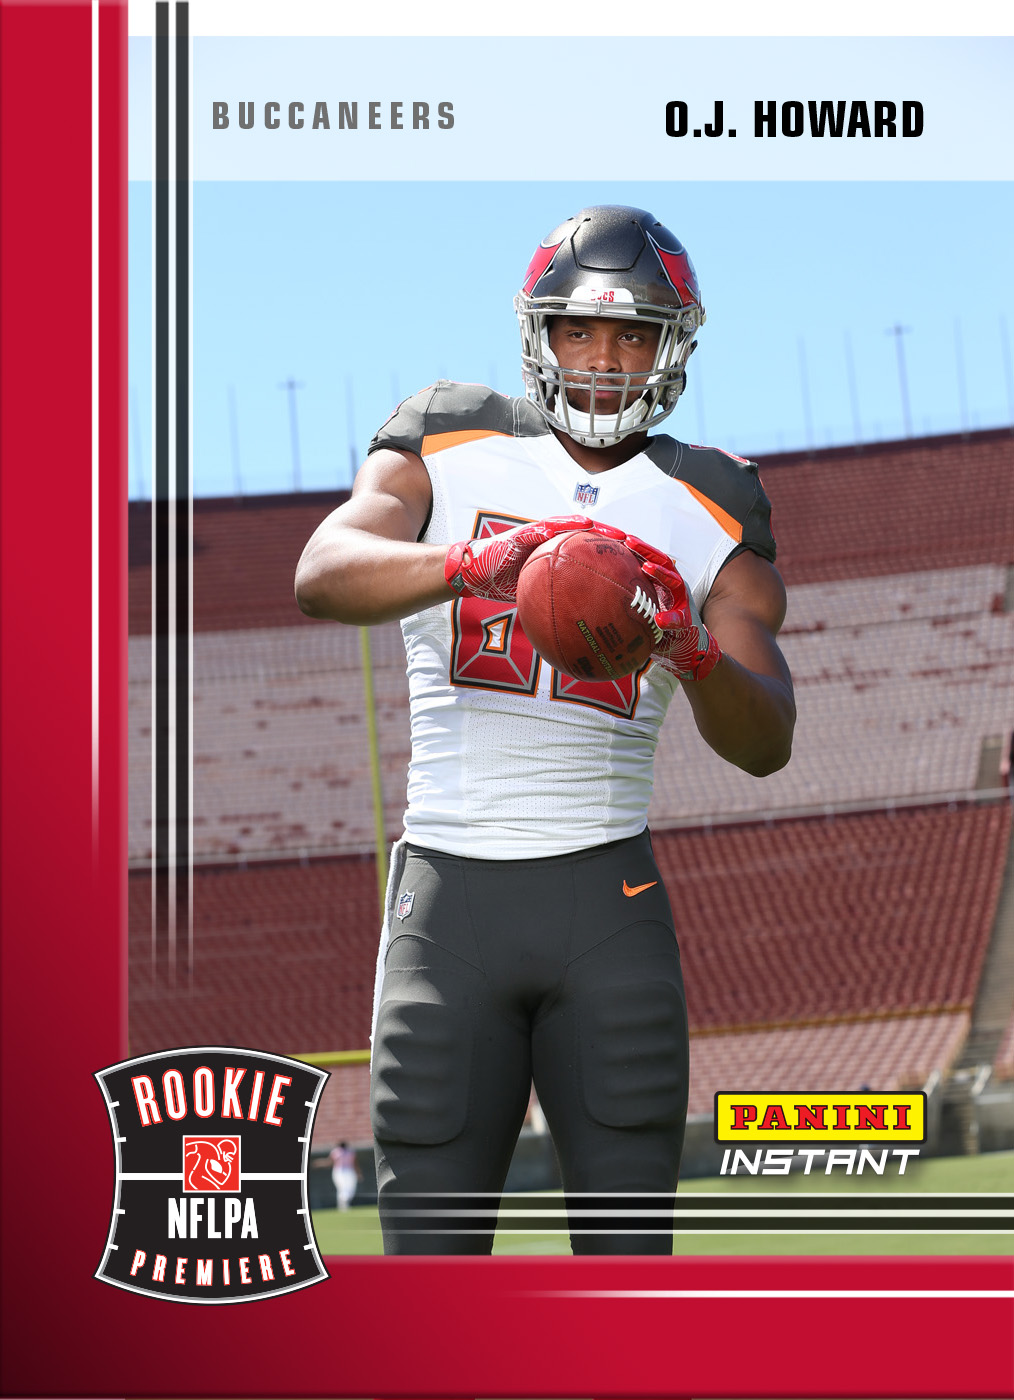 instant impact cards of top nfl rookies in uniform arrive on